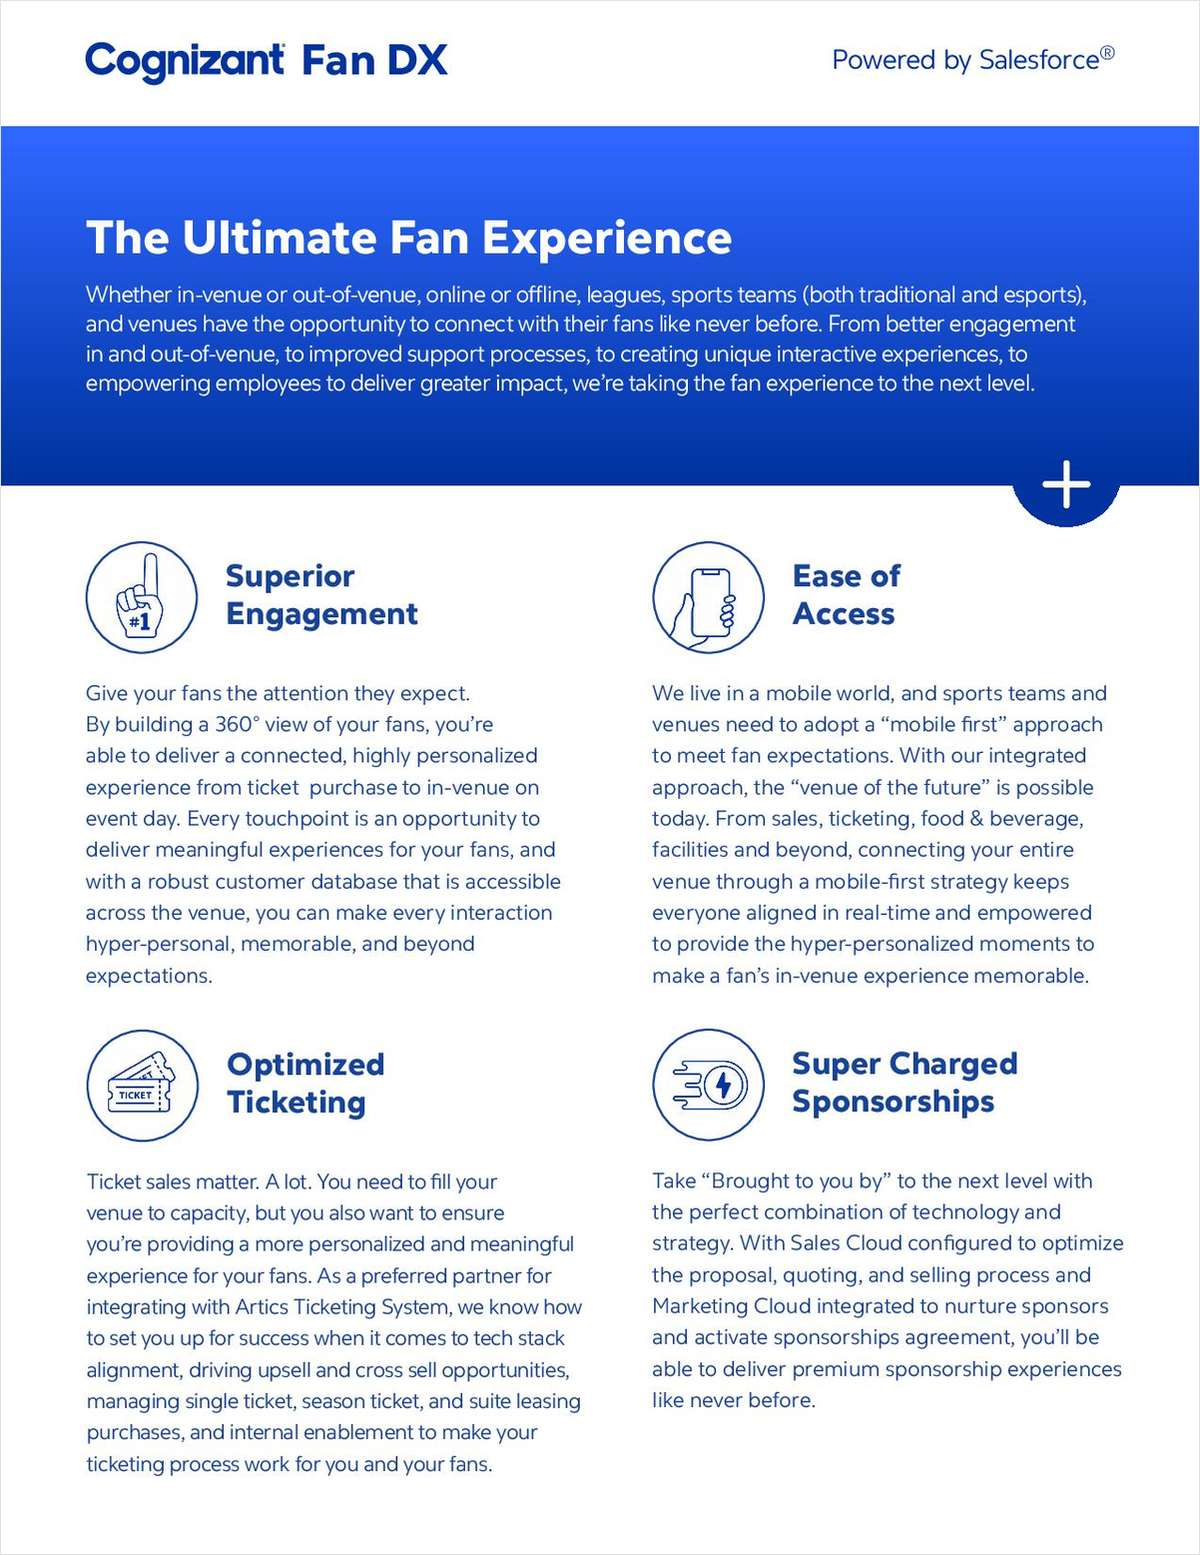 The Ultimate Fan Experience